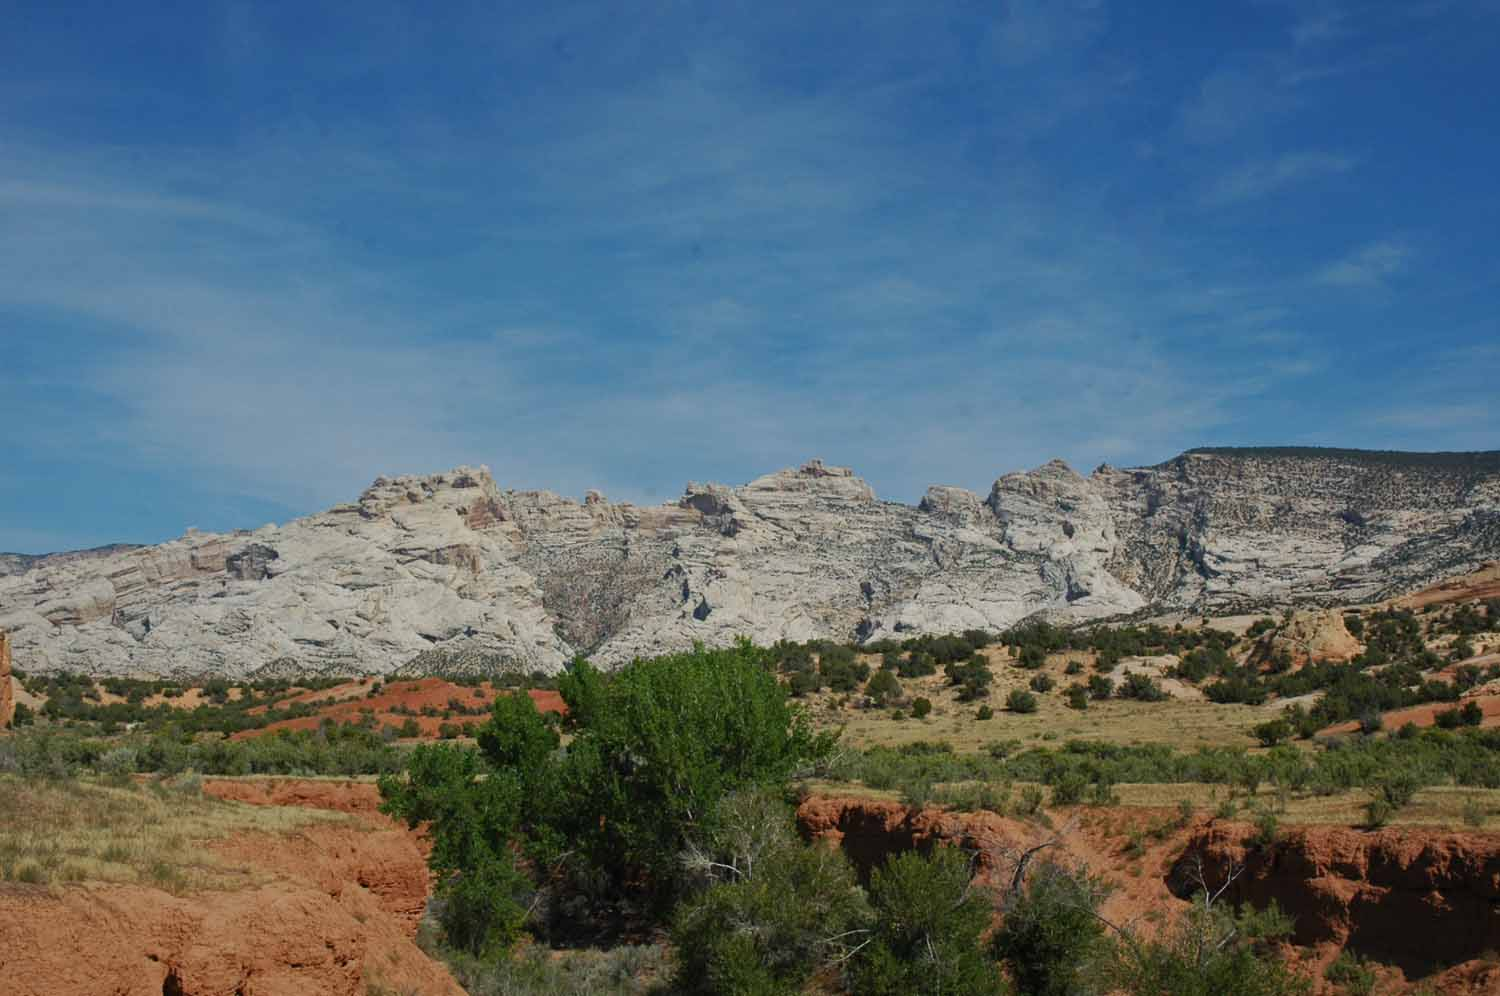 View near the campground - red rock and granite mountains